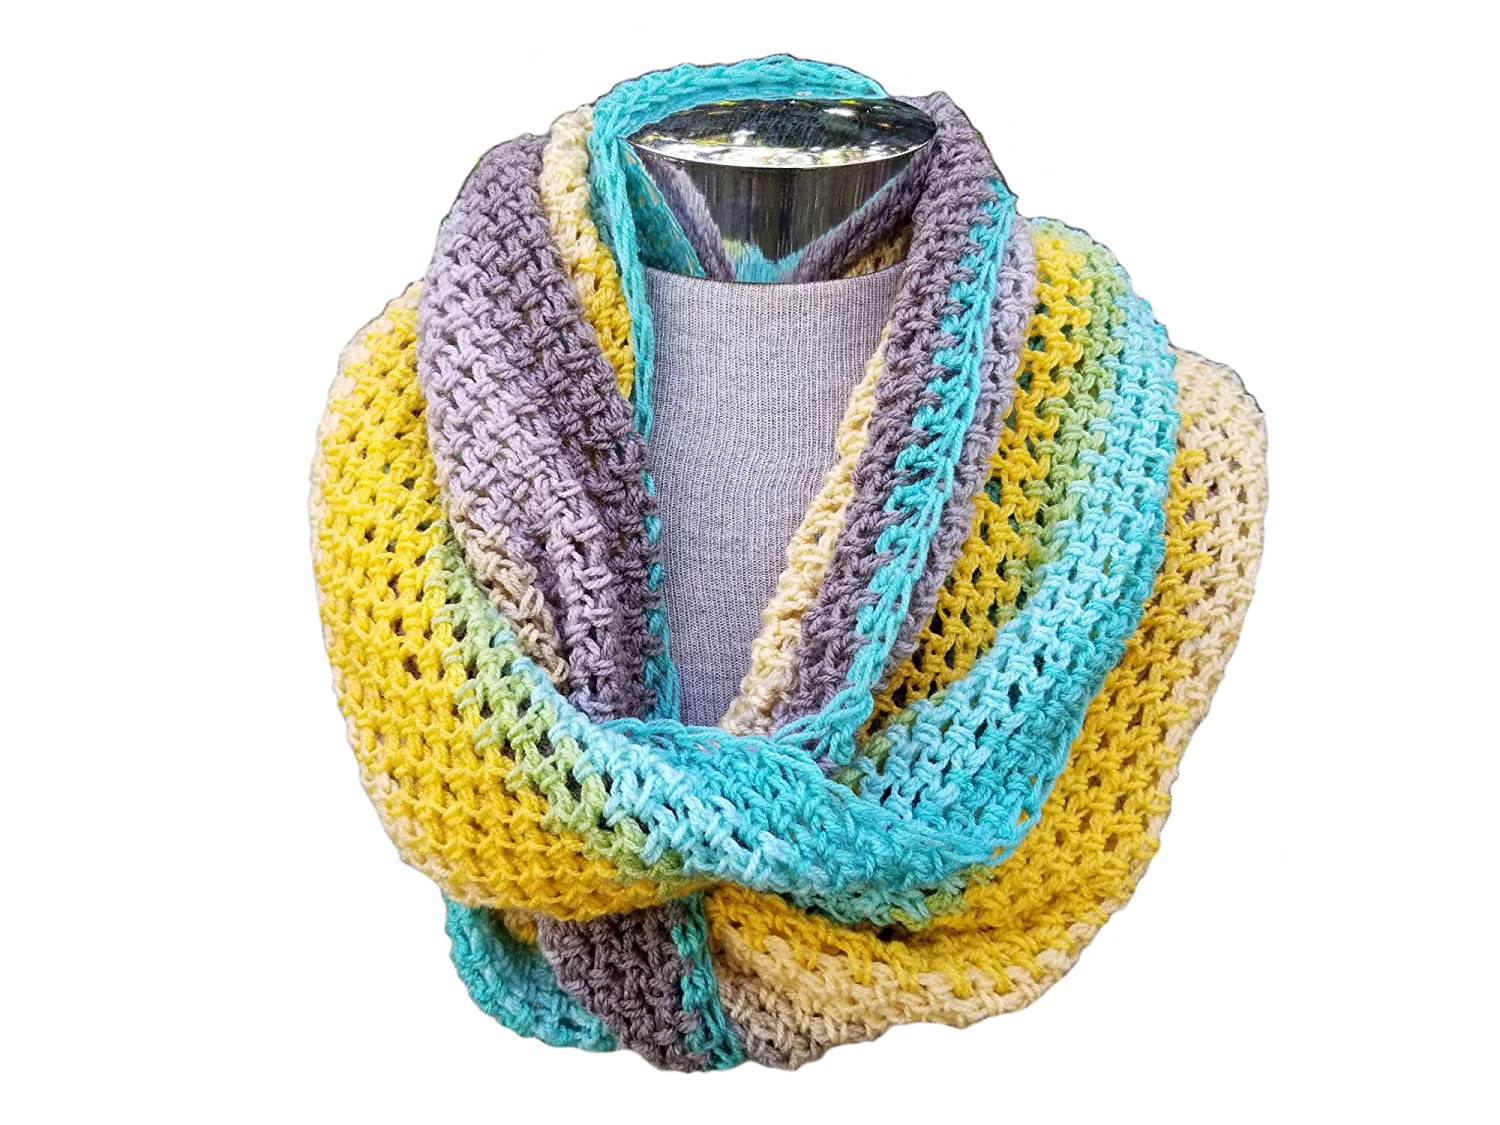 High quality new Crocheted Raleigh Mall Infinity Scarf